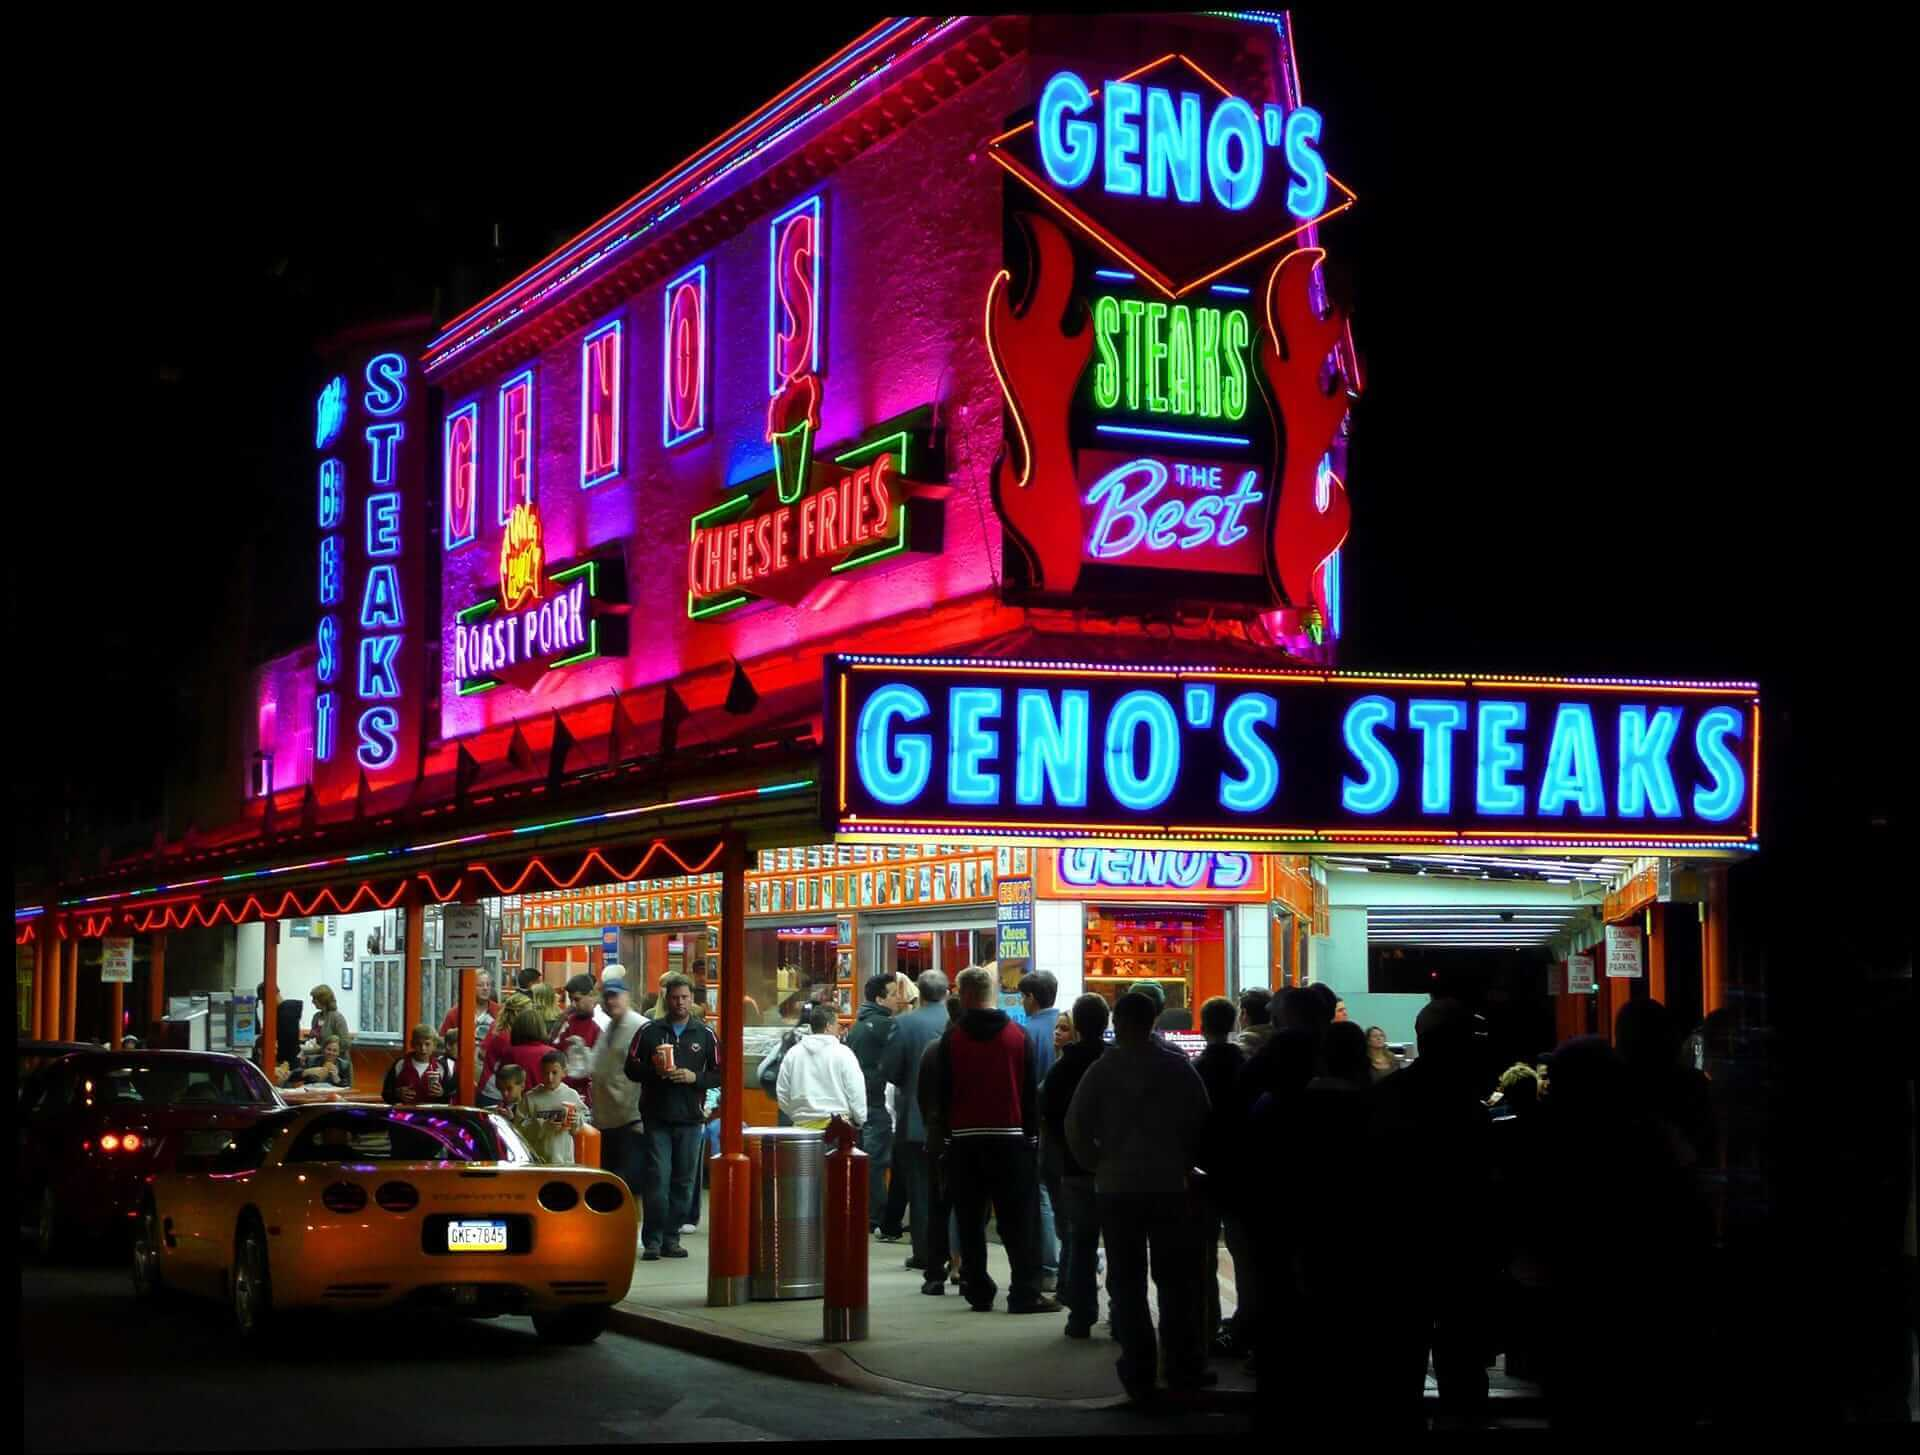 Classic Philly Cheesesteak at Geno's Steaks, Philadelphia